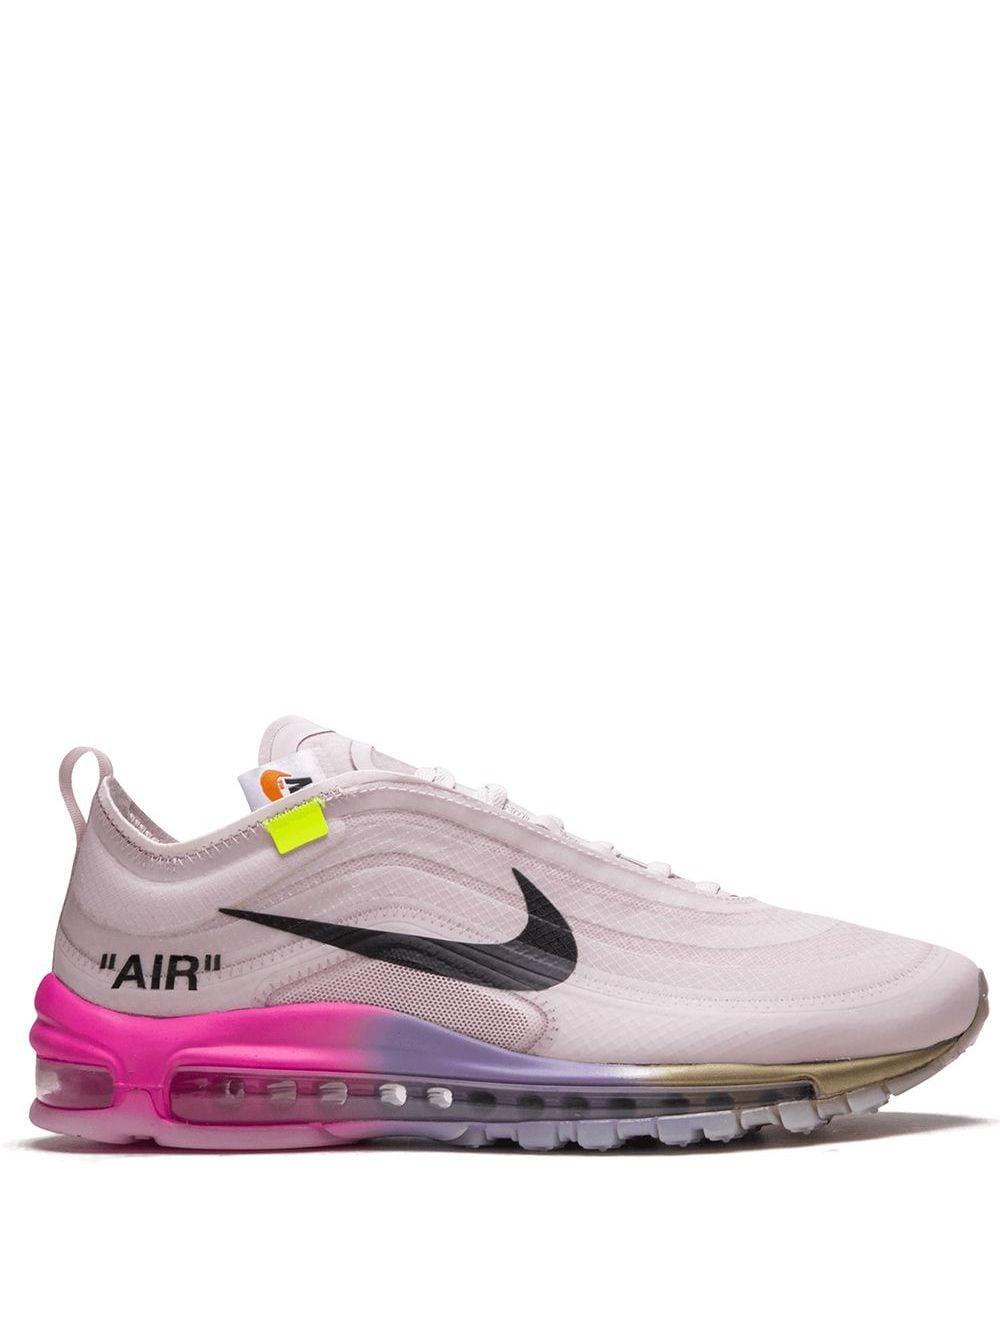 NIKE X OFF-WHITE Rubber The 10th: Air Max 97 Og Sneakers in Pink ...